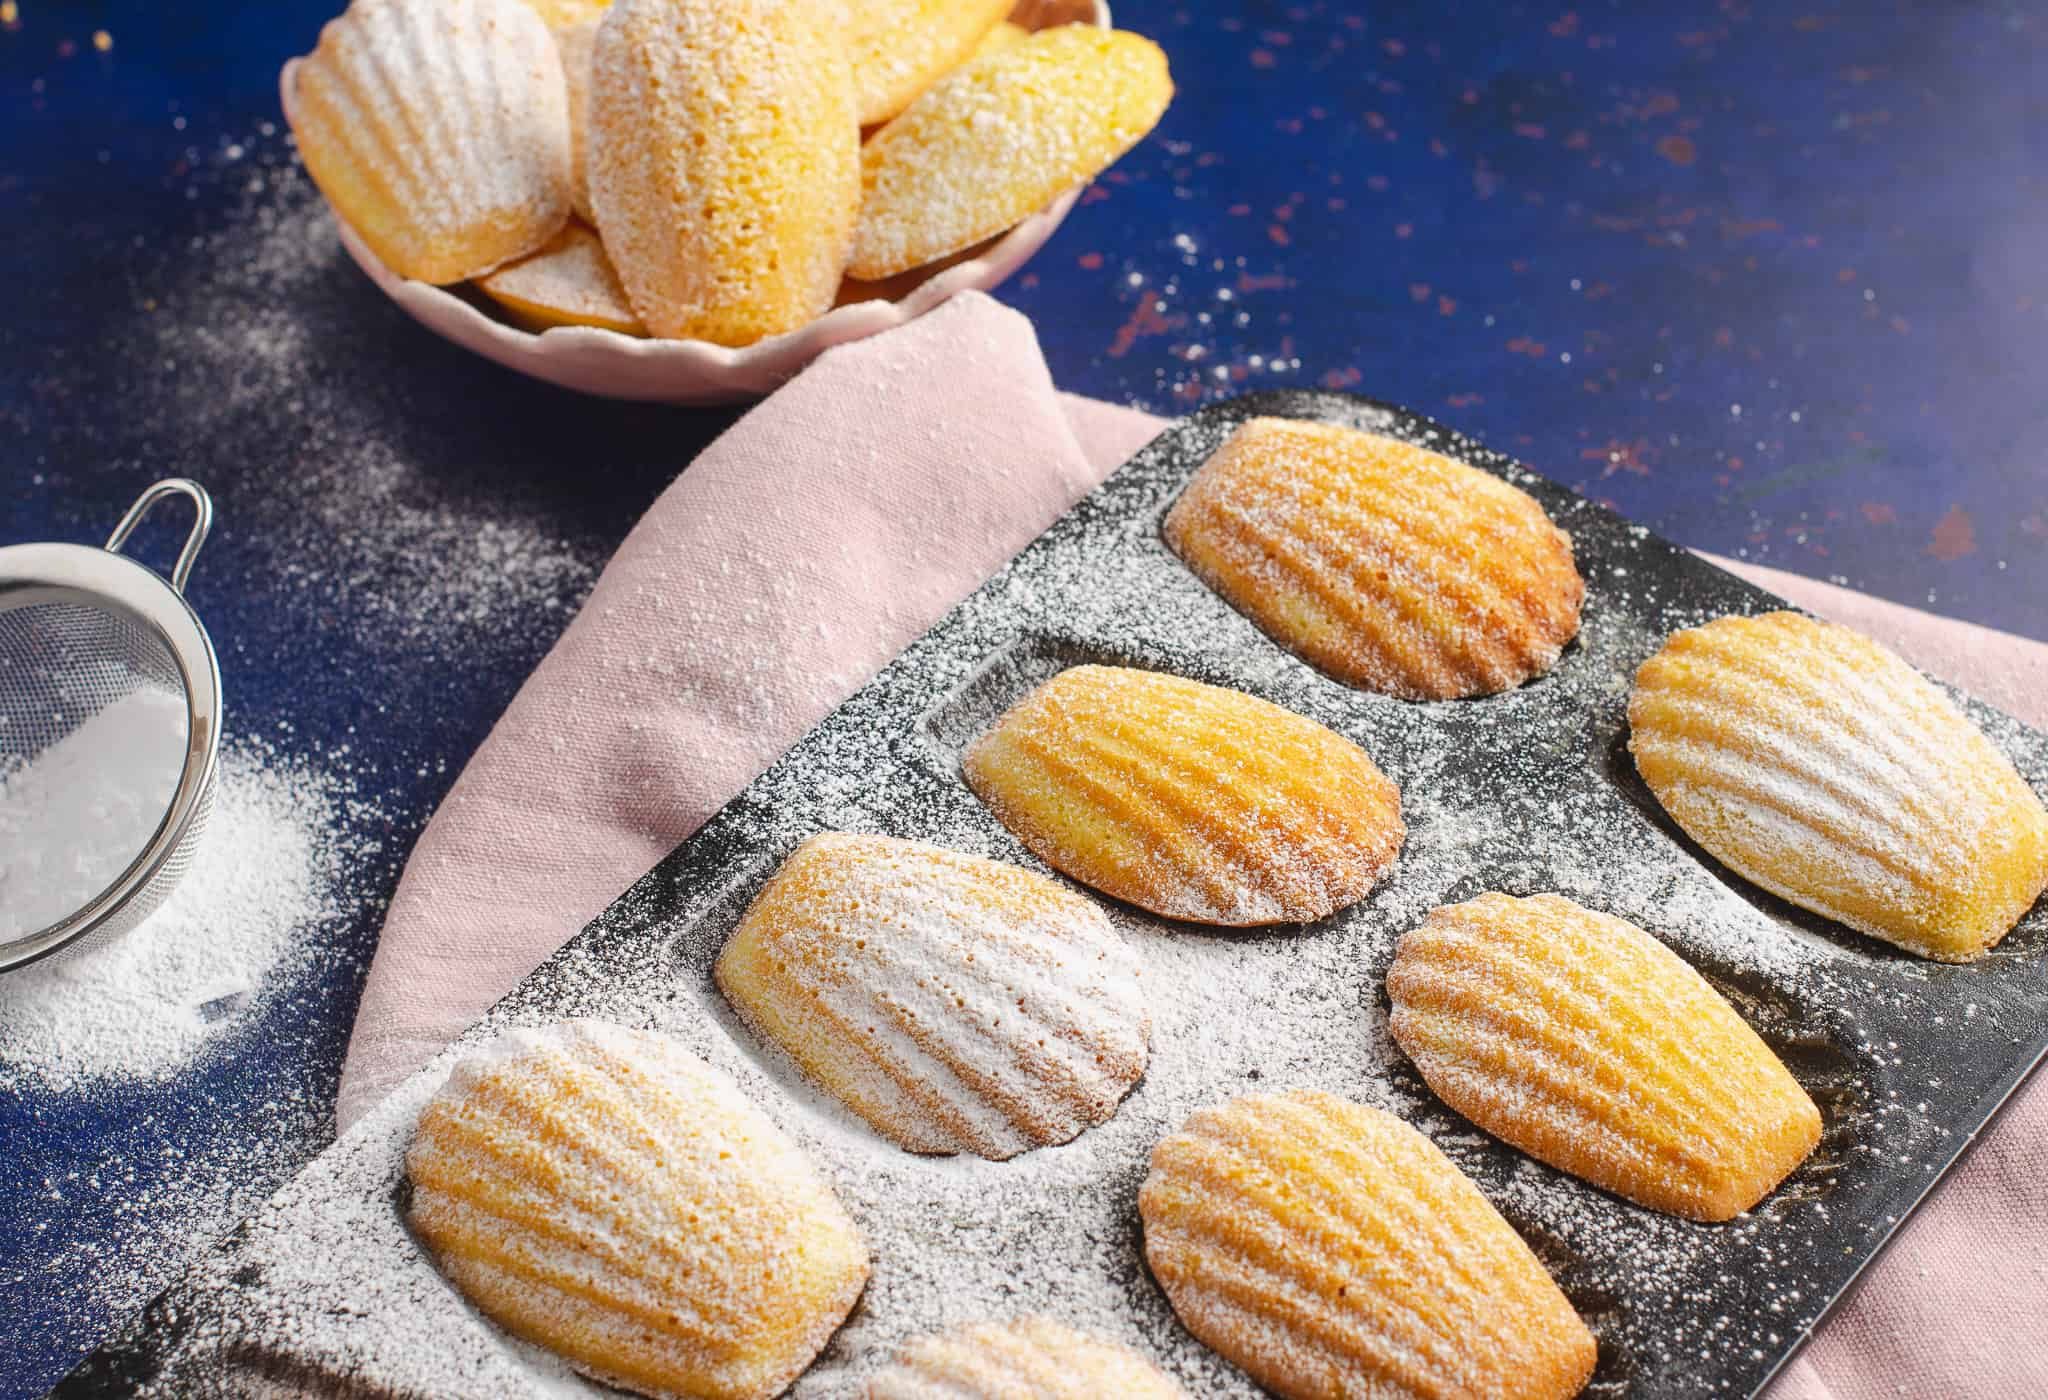 Lemon Madeleines in a baking tray dusted with icing sugar on dark blue backdrop